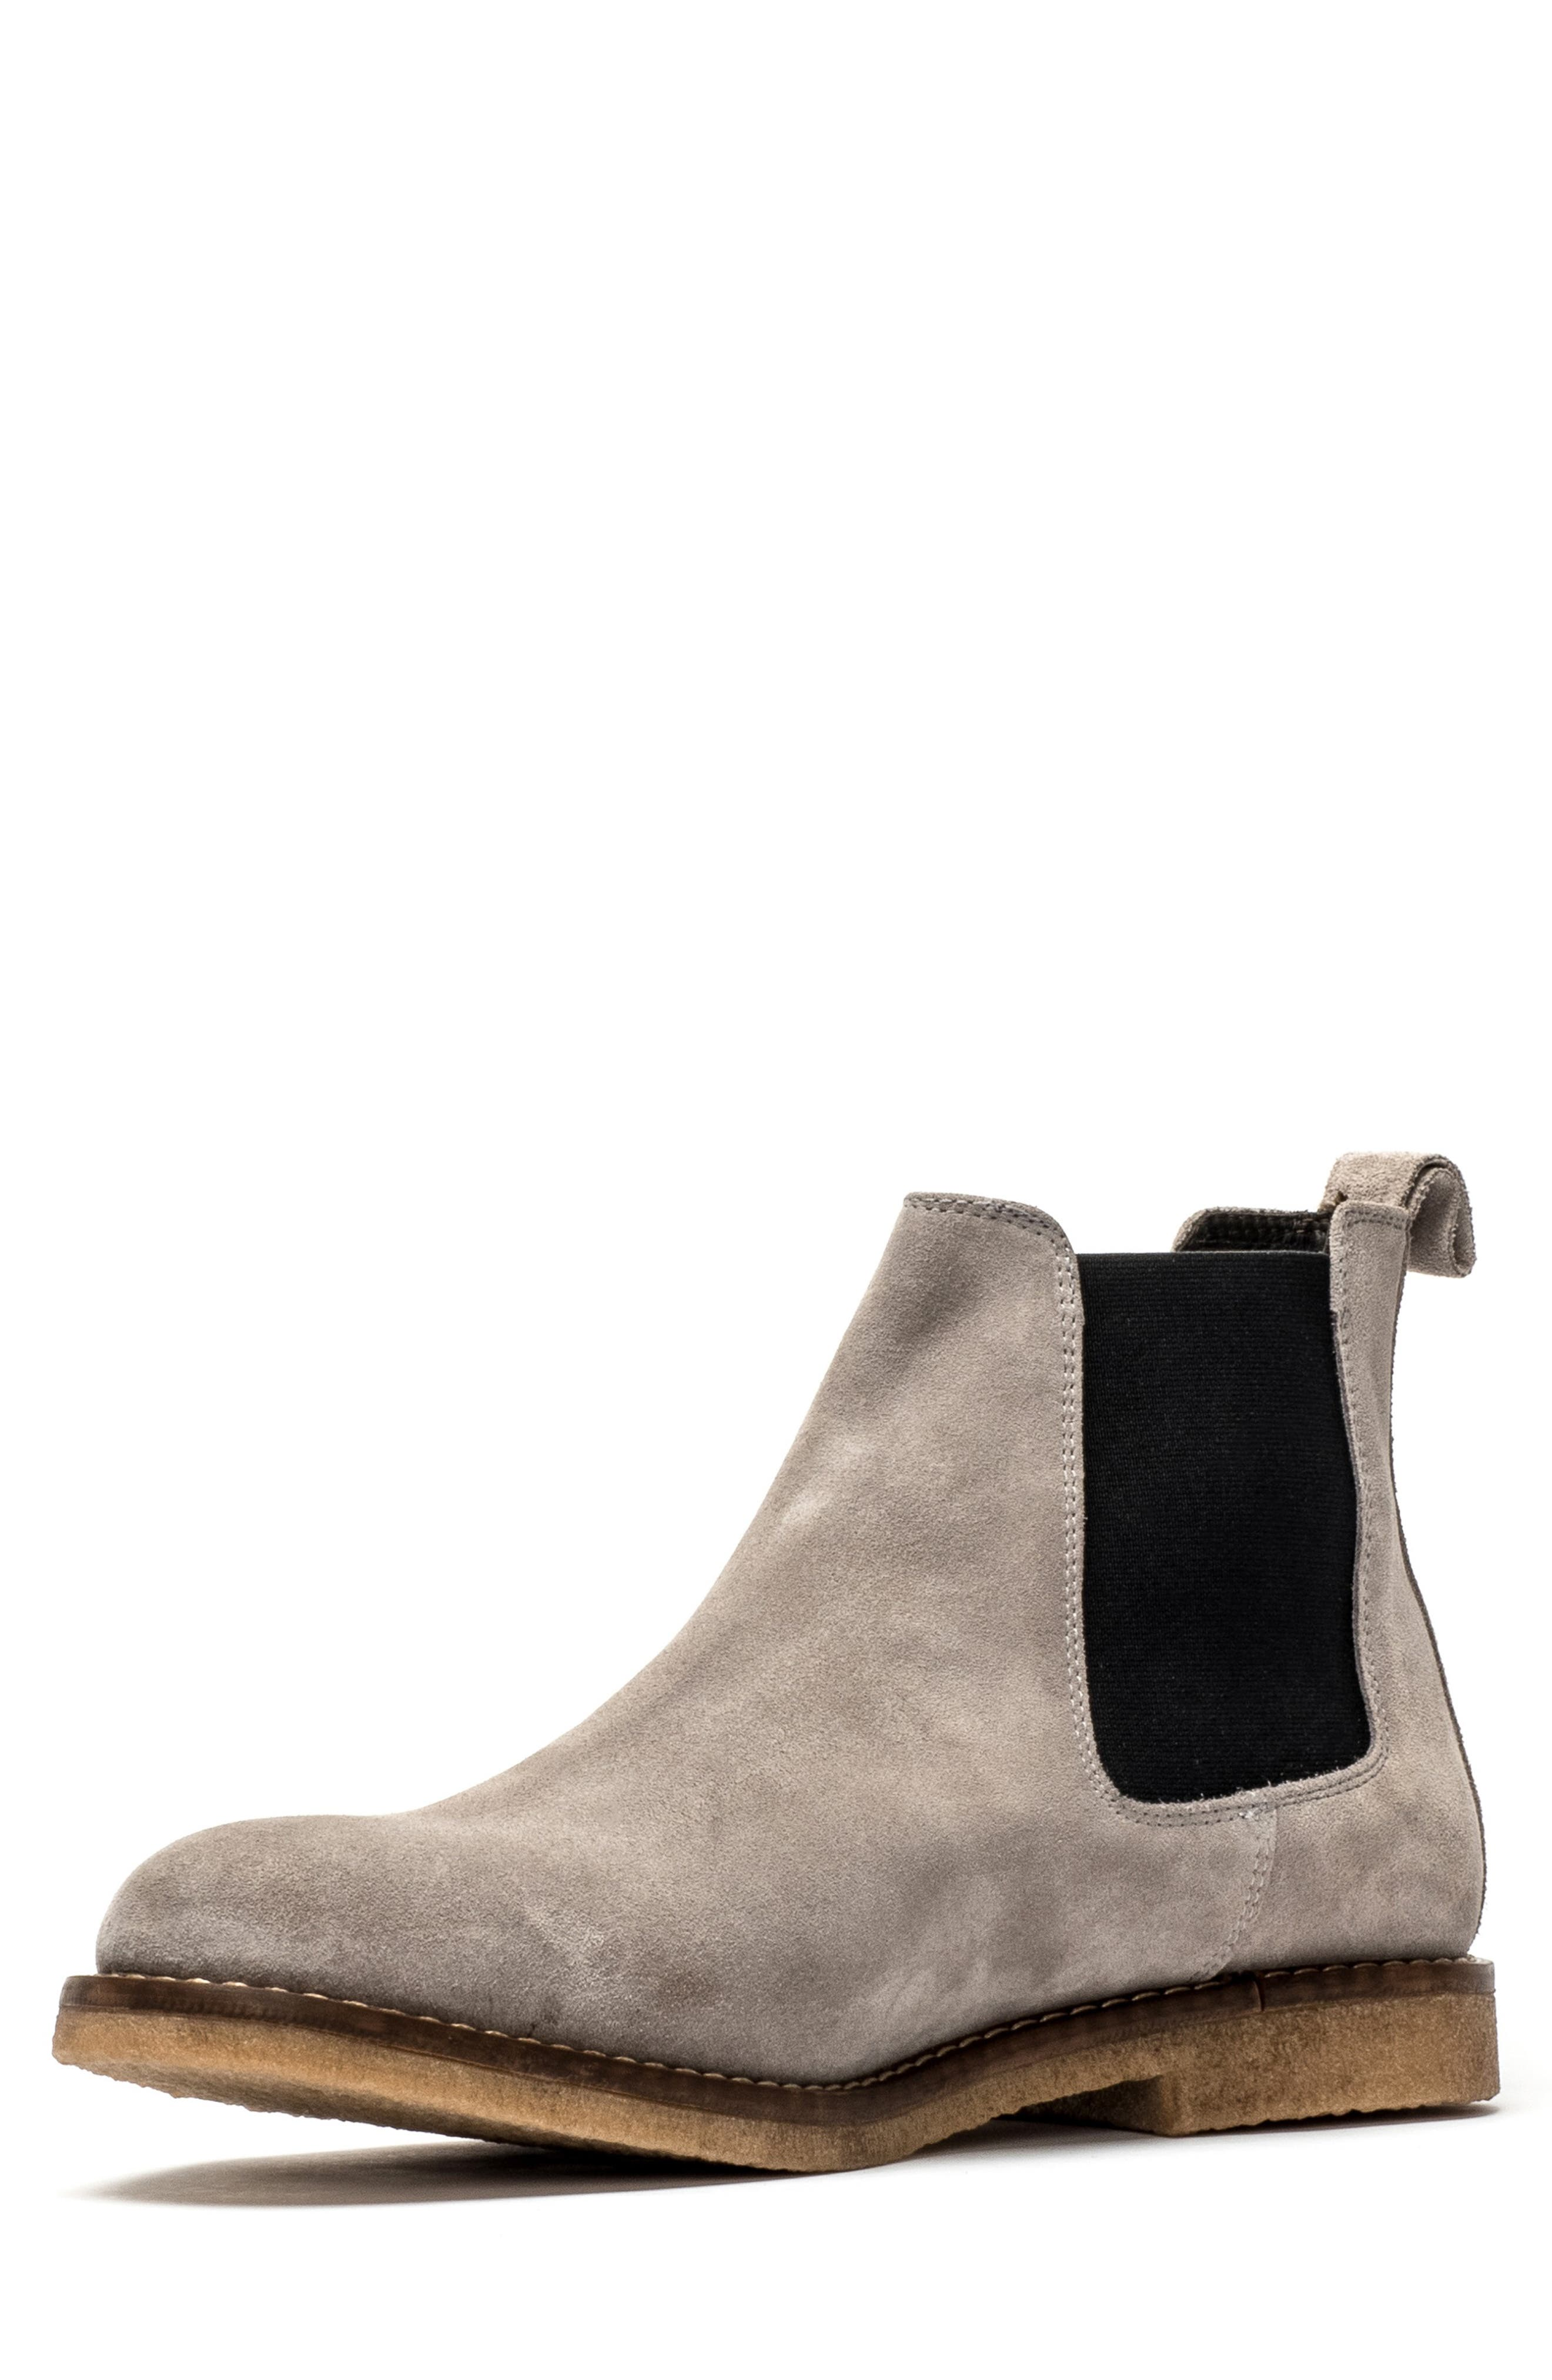 Gertrude Valley Water Repellent Chelsea Boot,                             Alternate thumbnail 7, color,                             STONE